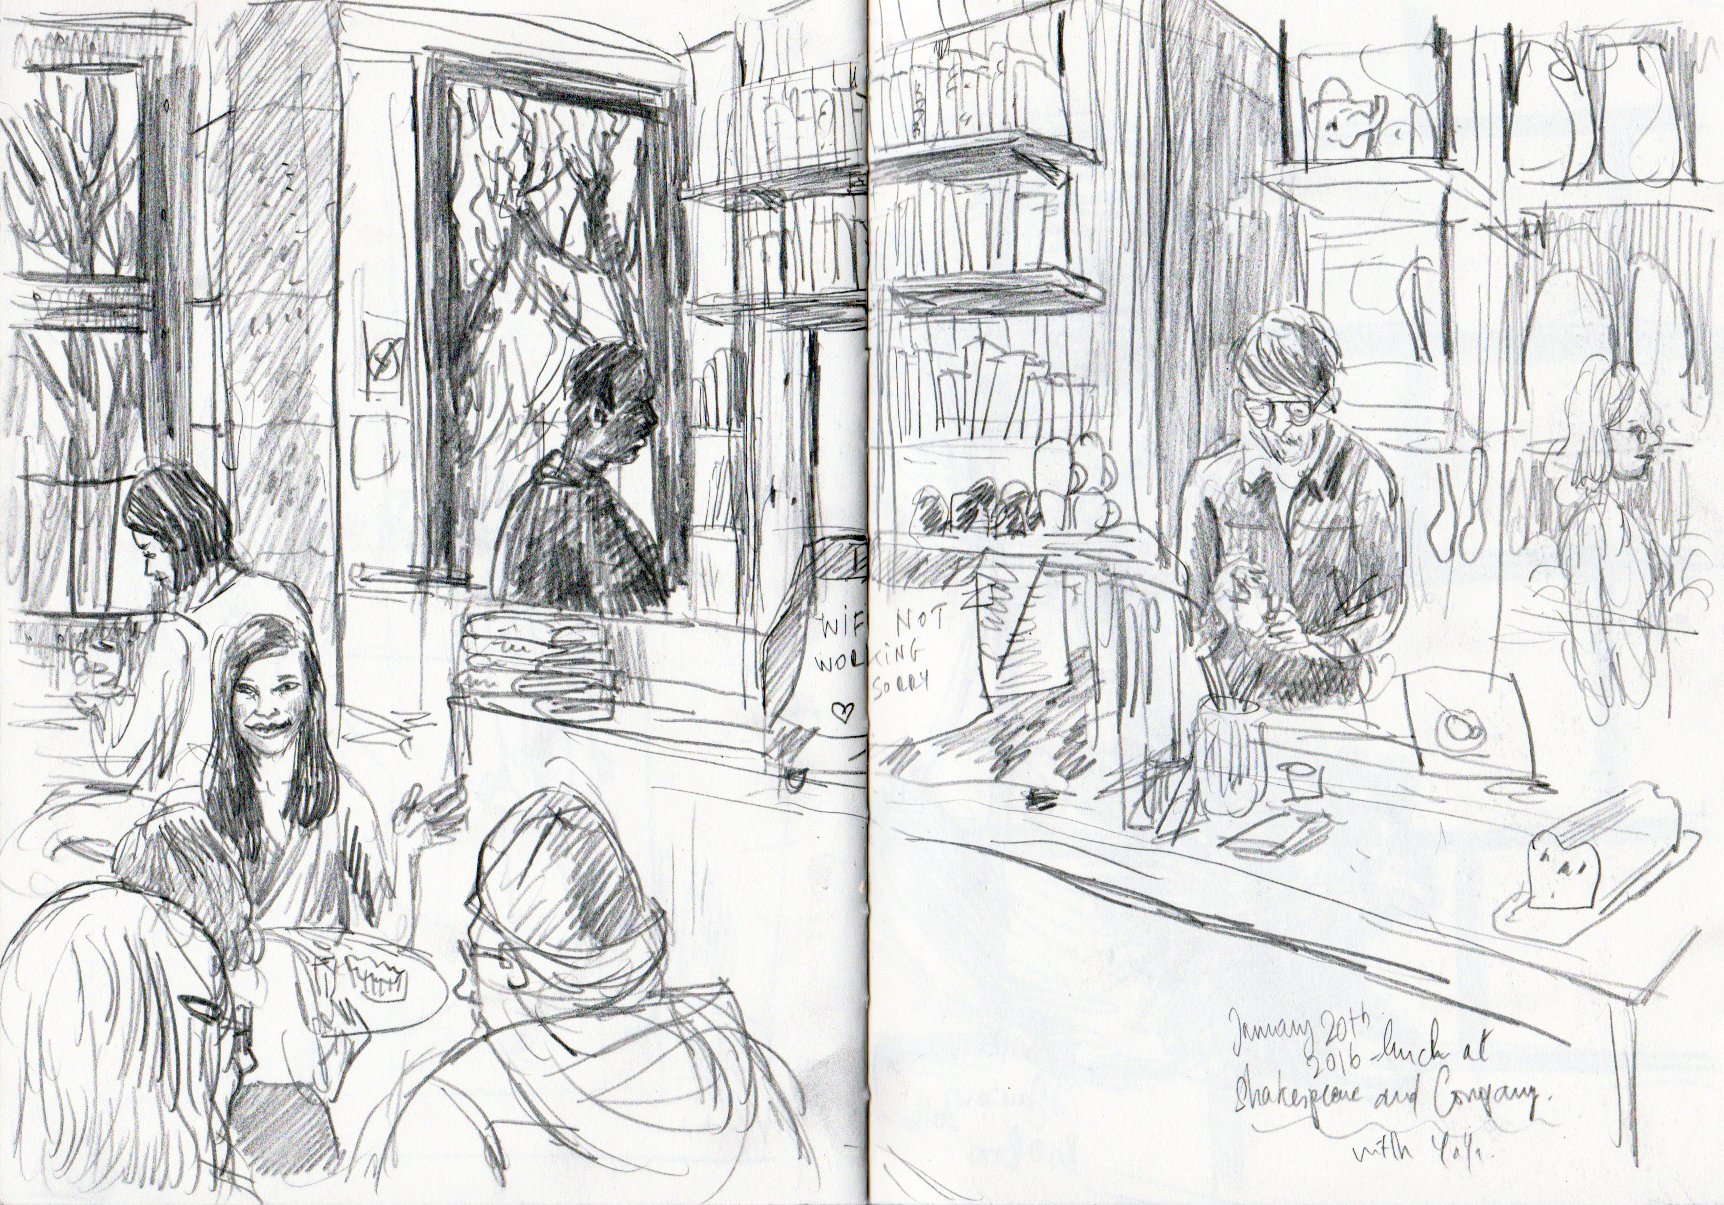 Shakespeare and Company B&W sketch.jpeg